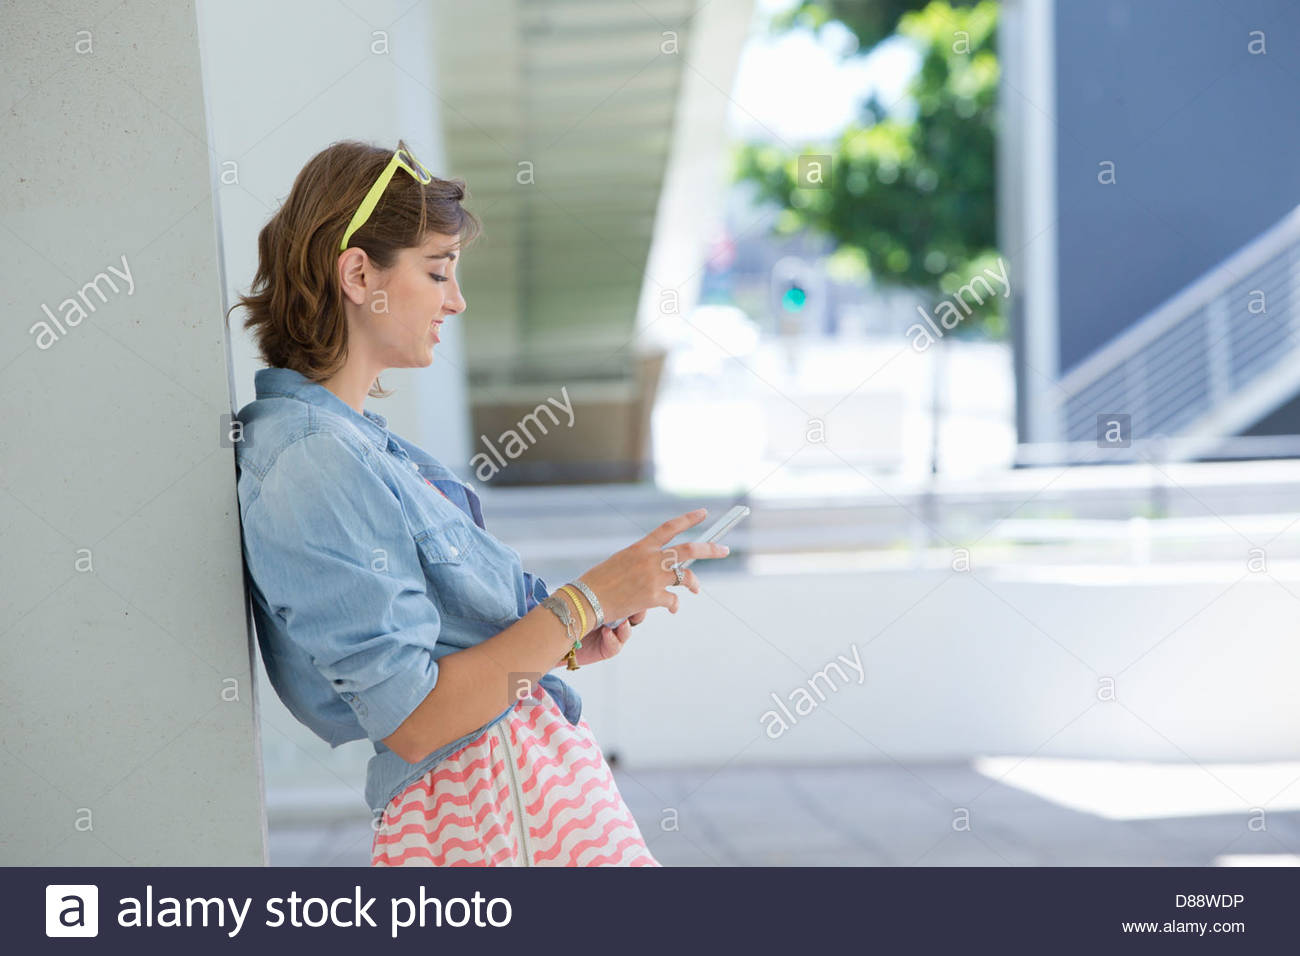 Young woman using digital tablet and leaning against wall - Stock Image